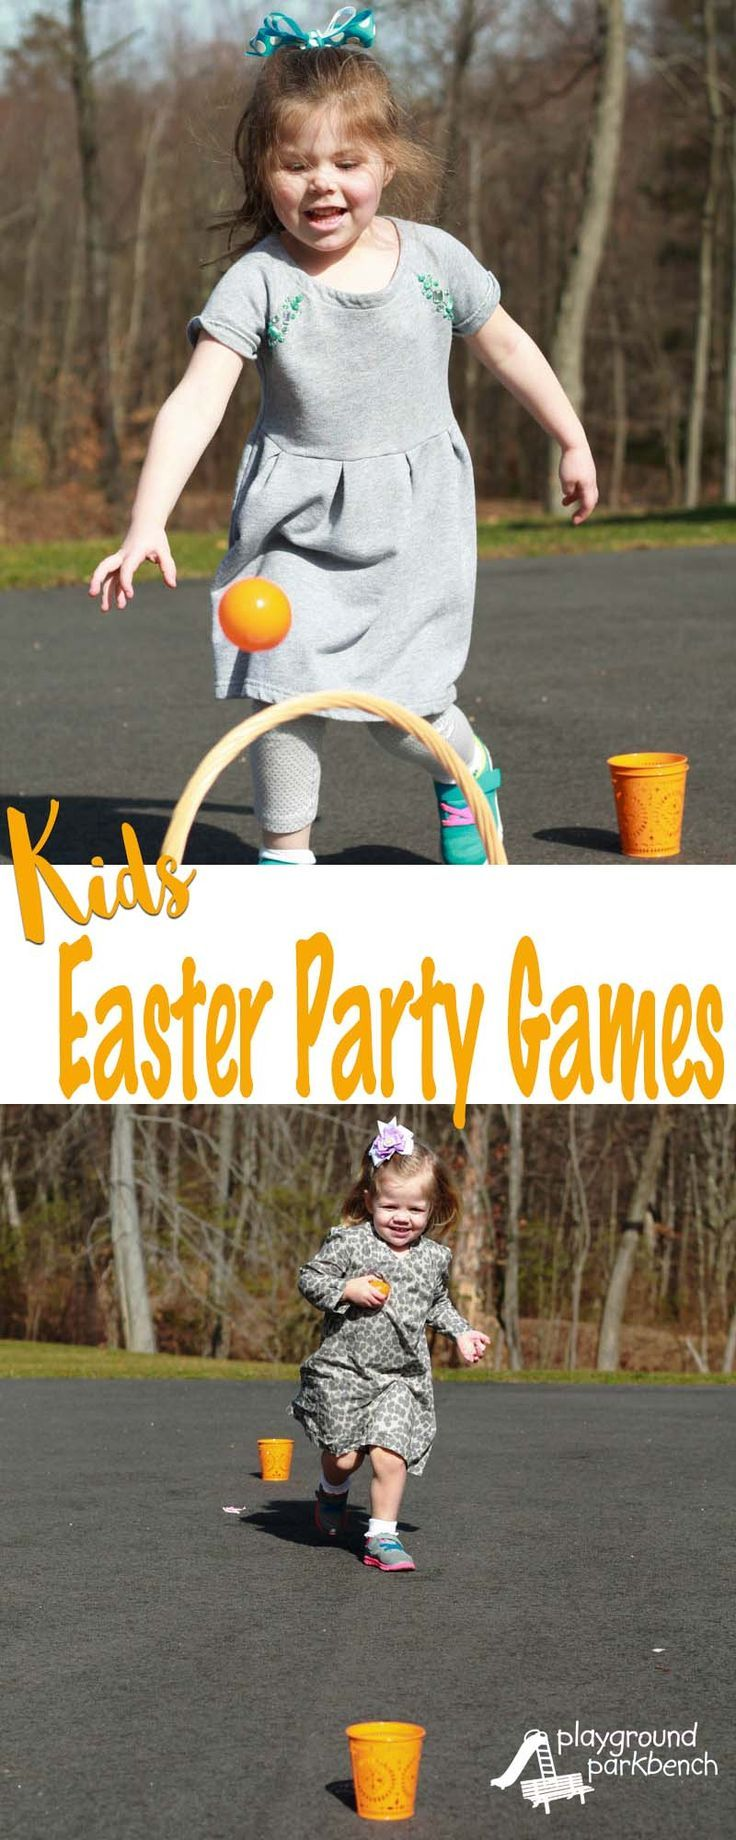 Need some party game ideas or gross motor challenges for your child's Easter Party?  These Kids Easter Party Games are sure to get your toddler or preschooler moving, and burn off all their chocolate bunny sugar high!  Great for preschool parties or Easte